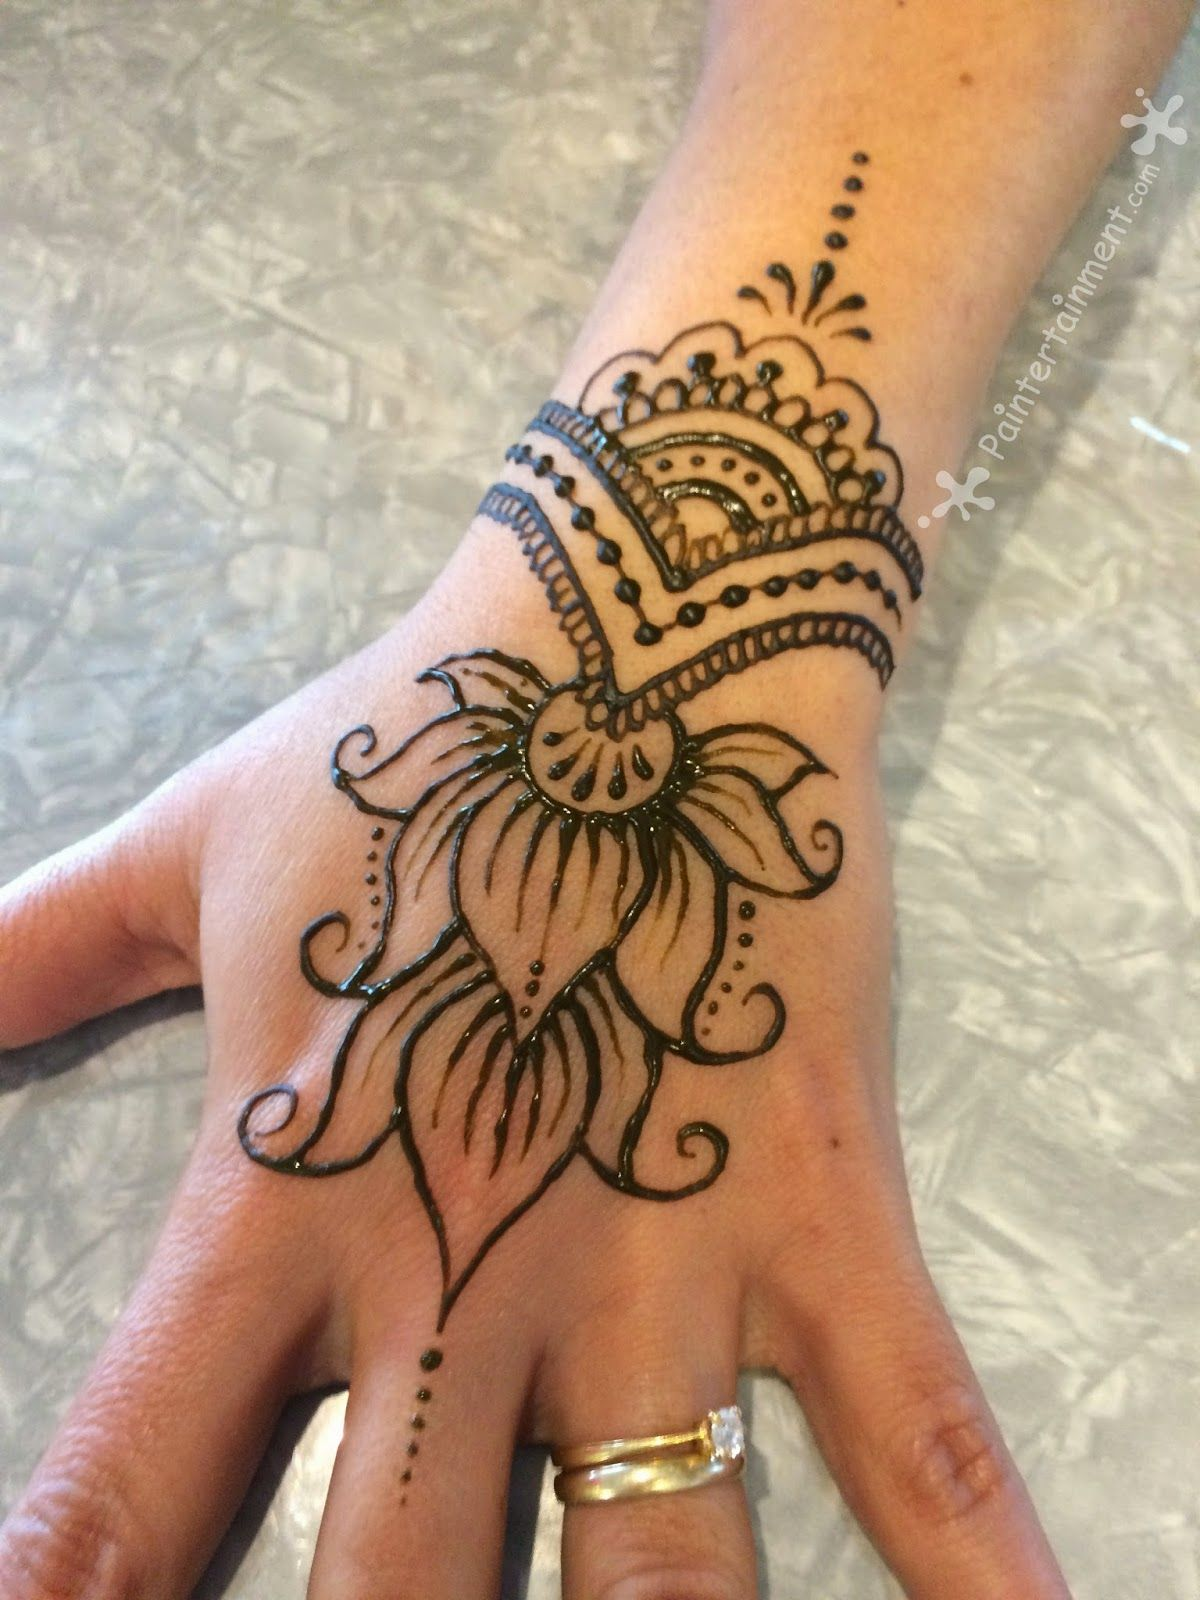 Simple Henna Tattoo Henna Tattoo: What I've Been Painting Lately...